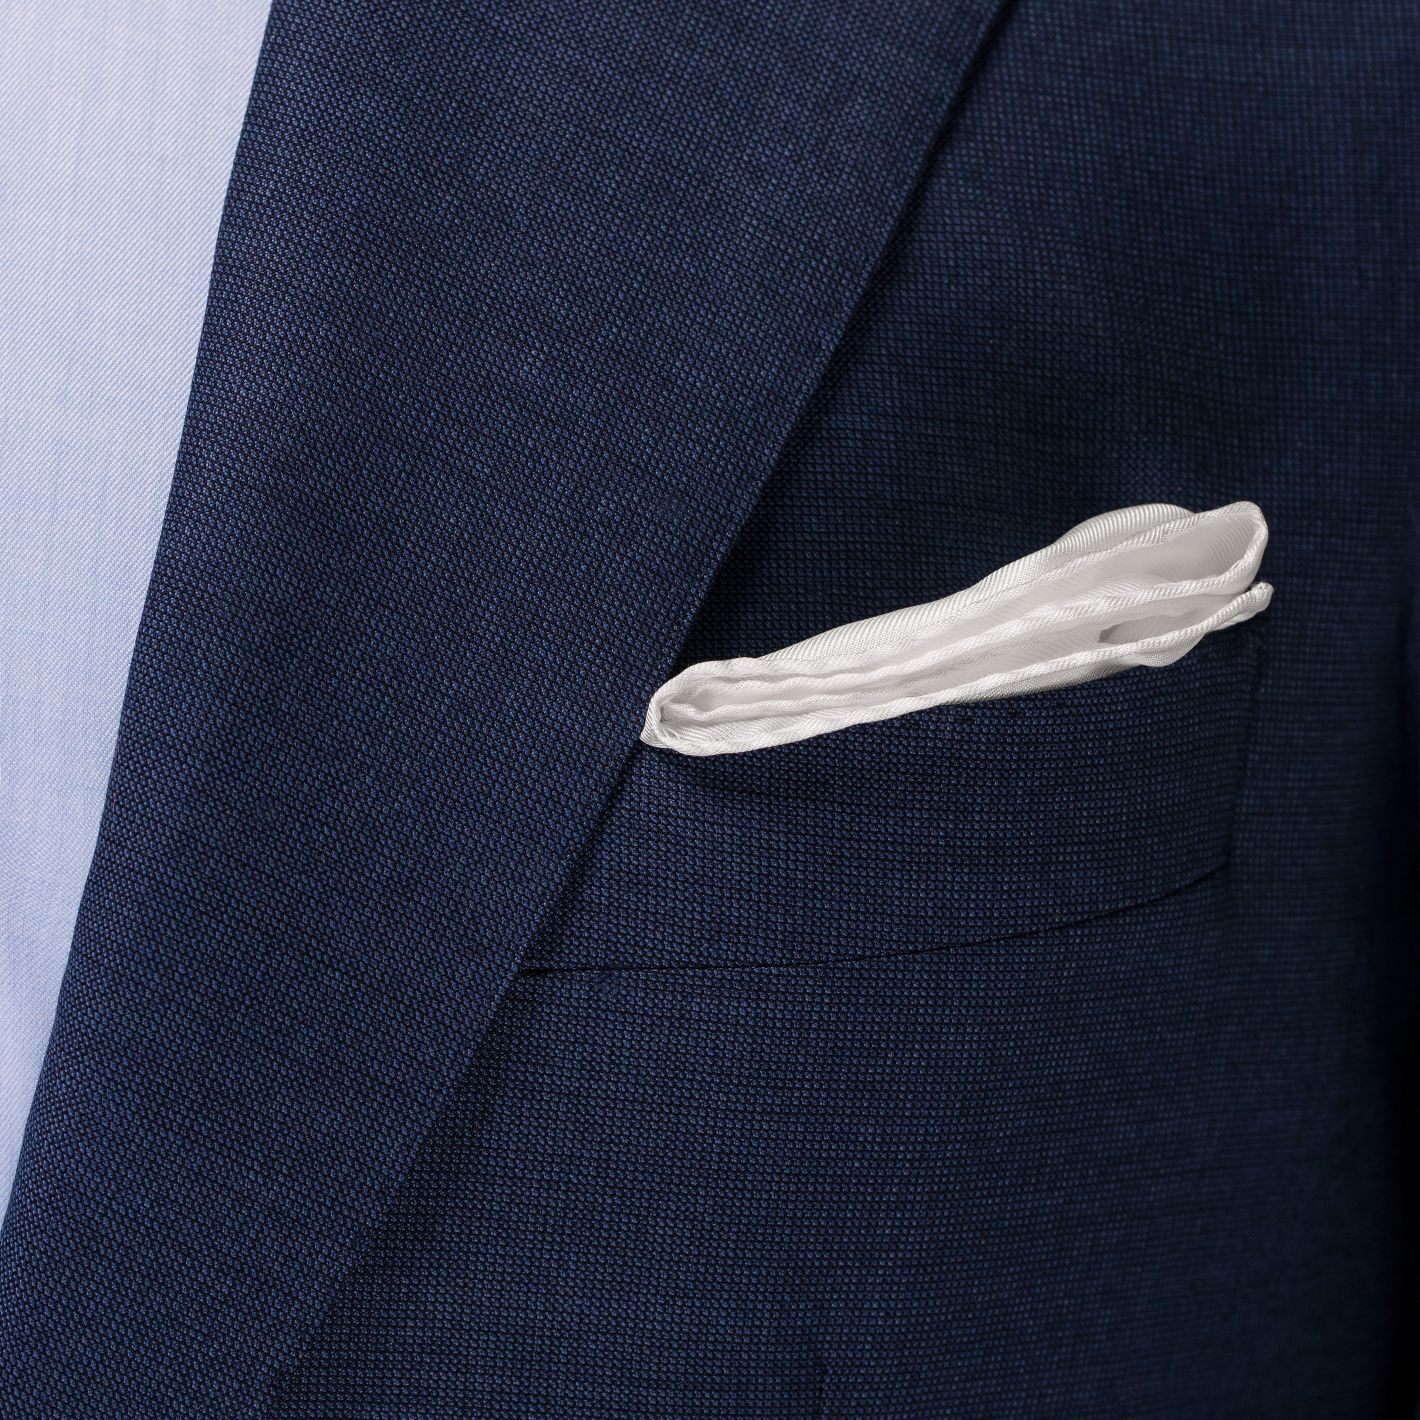 100% silk premium quality made in Italy men's white classic pocket square